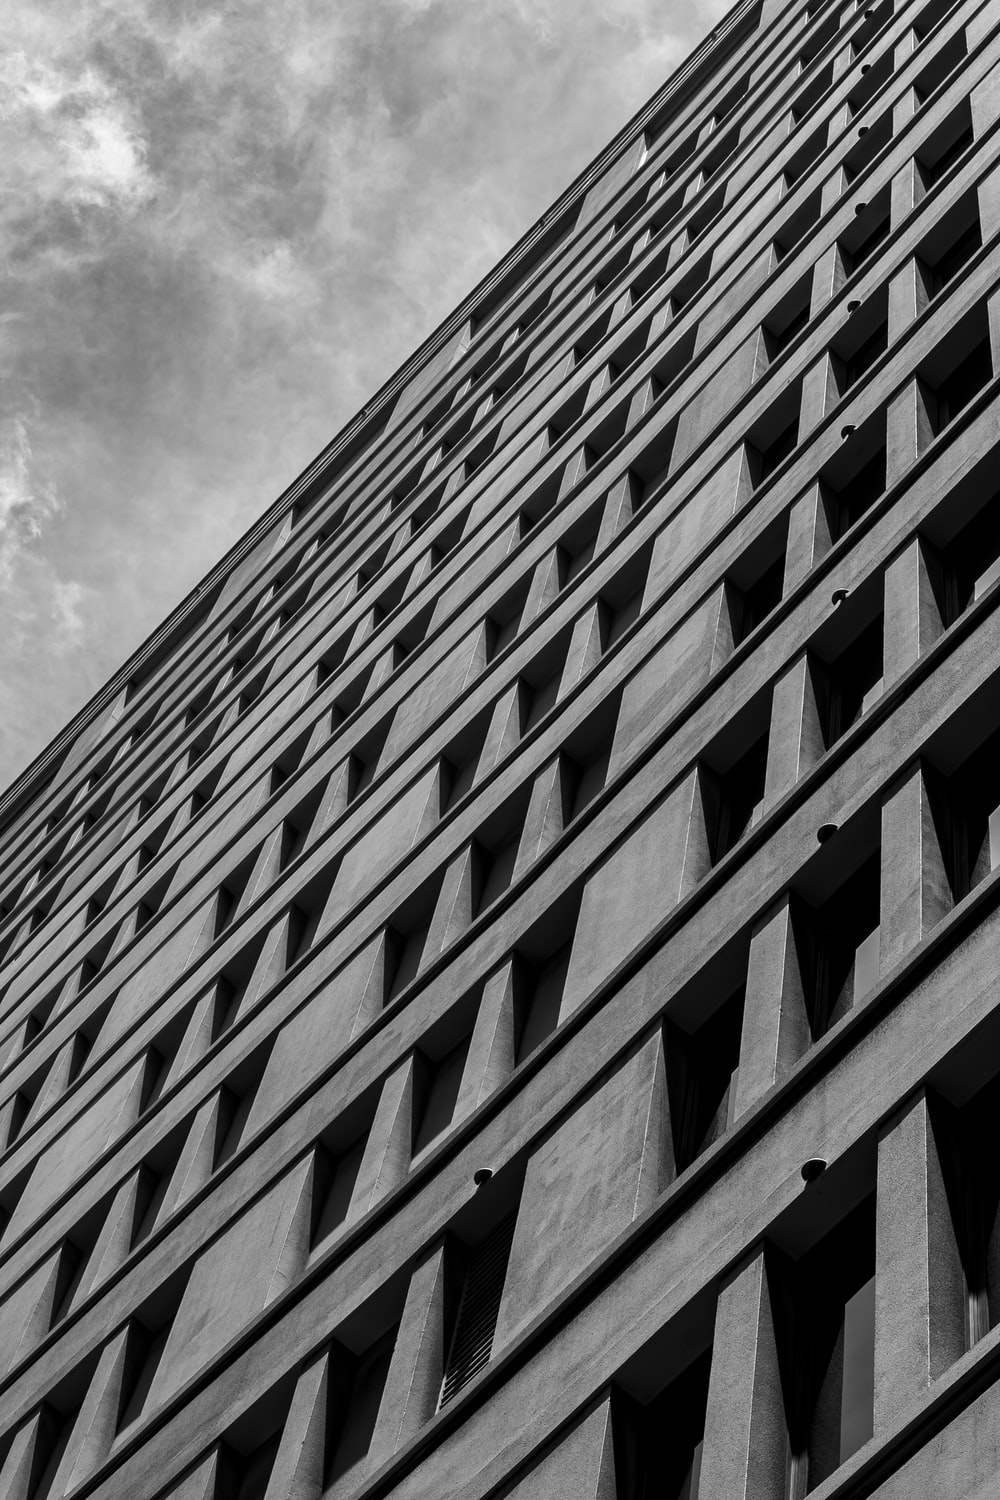 grayscale photo of concrete building under cloudy sky